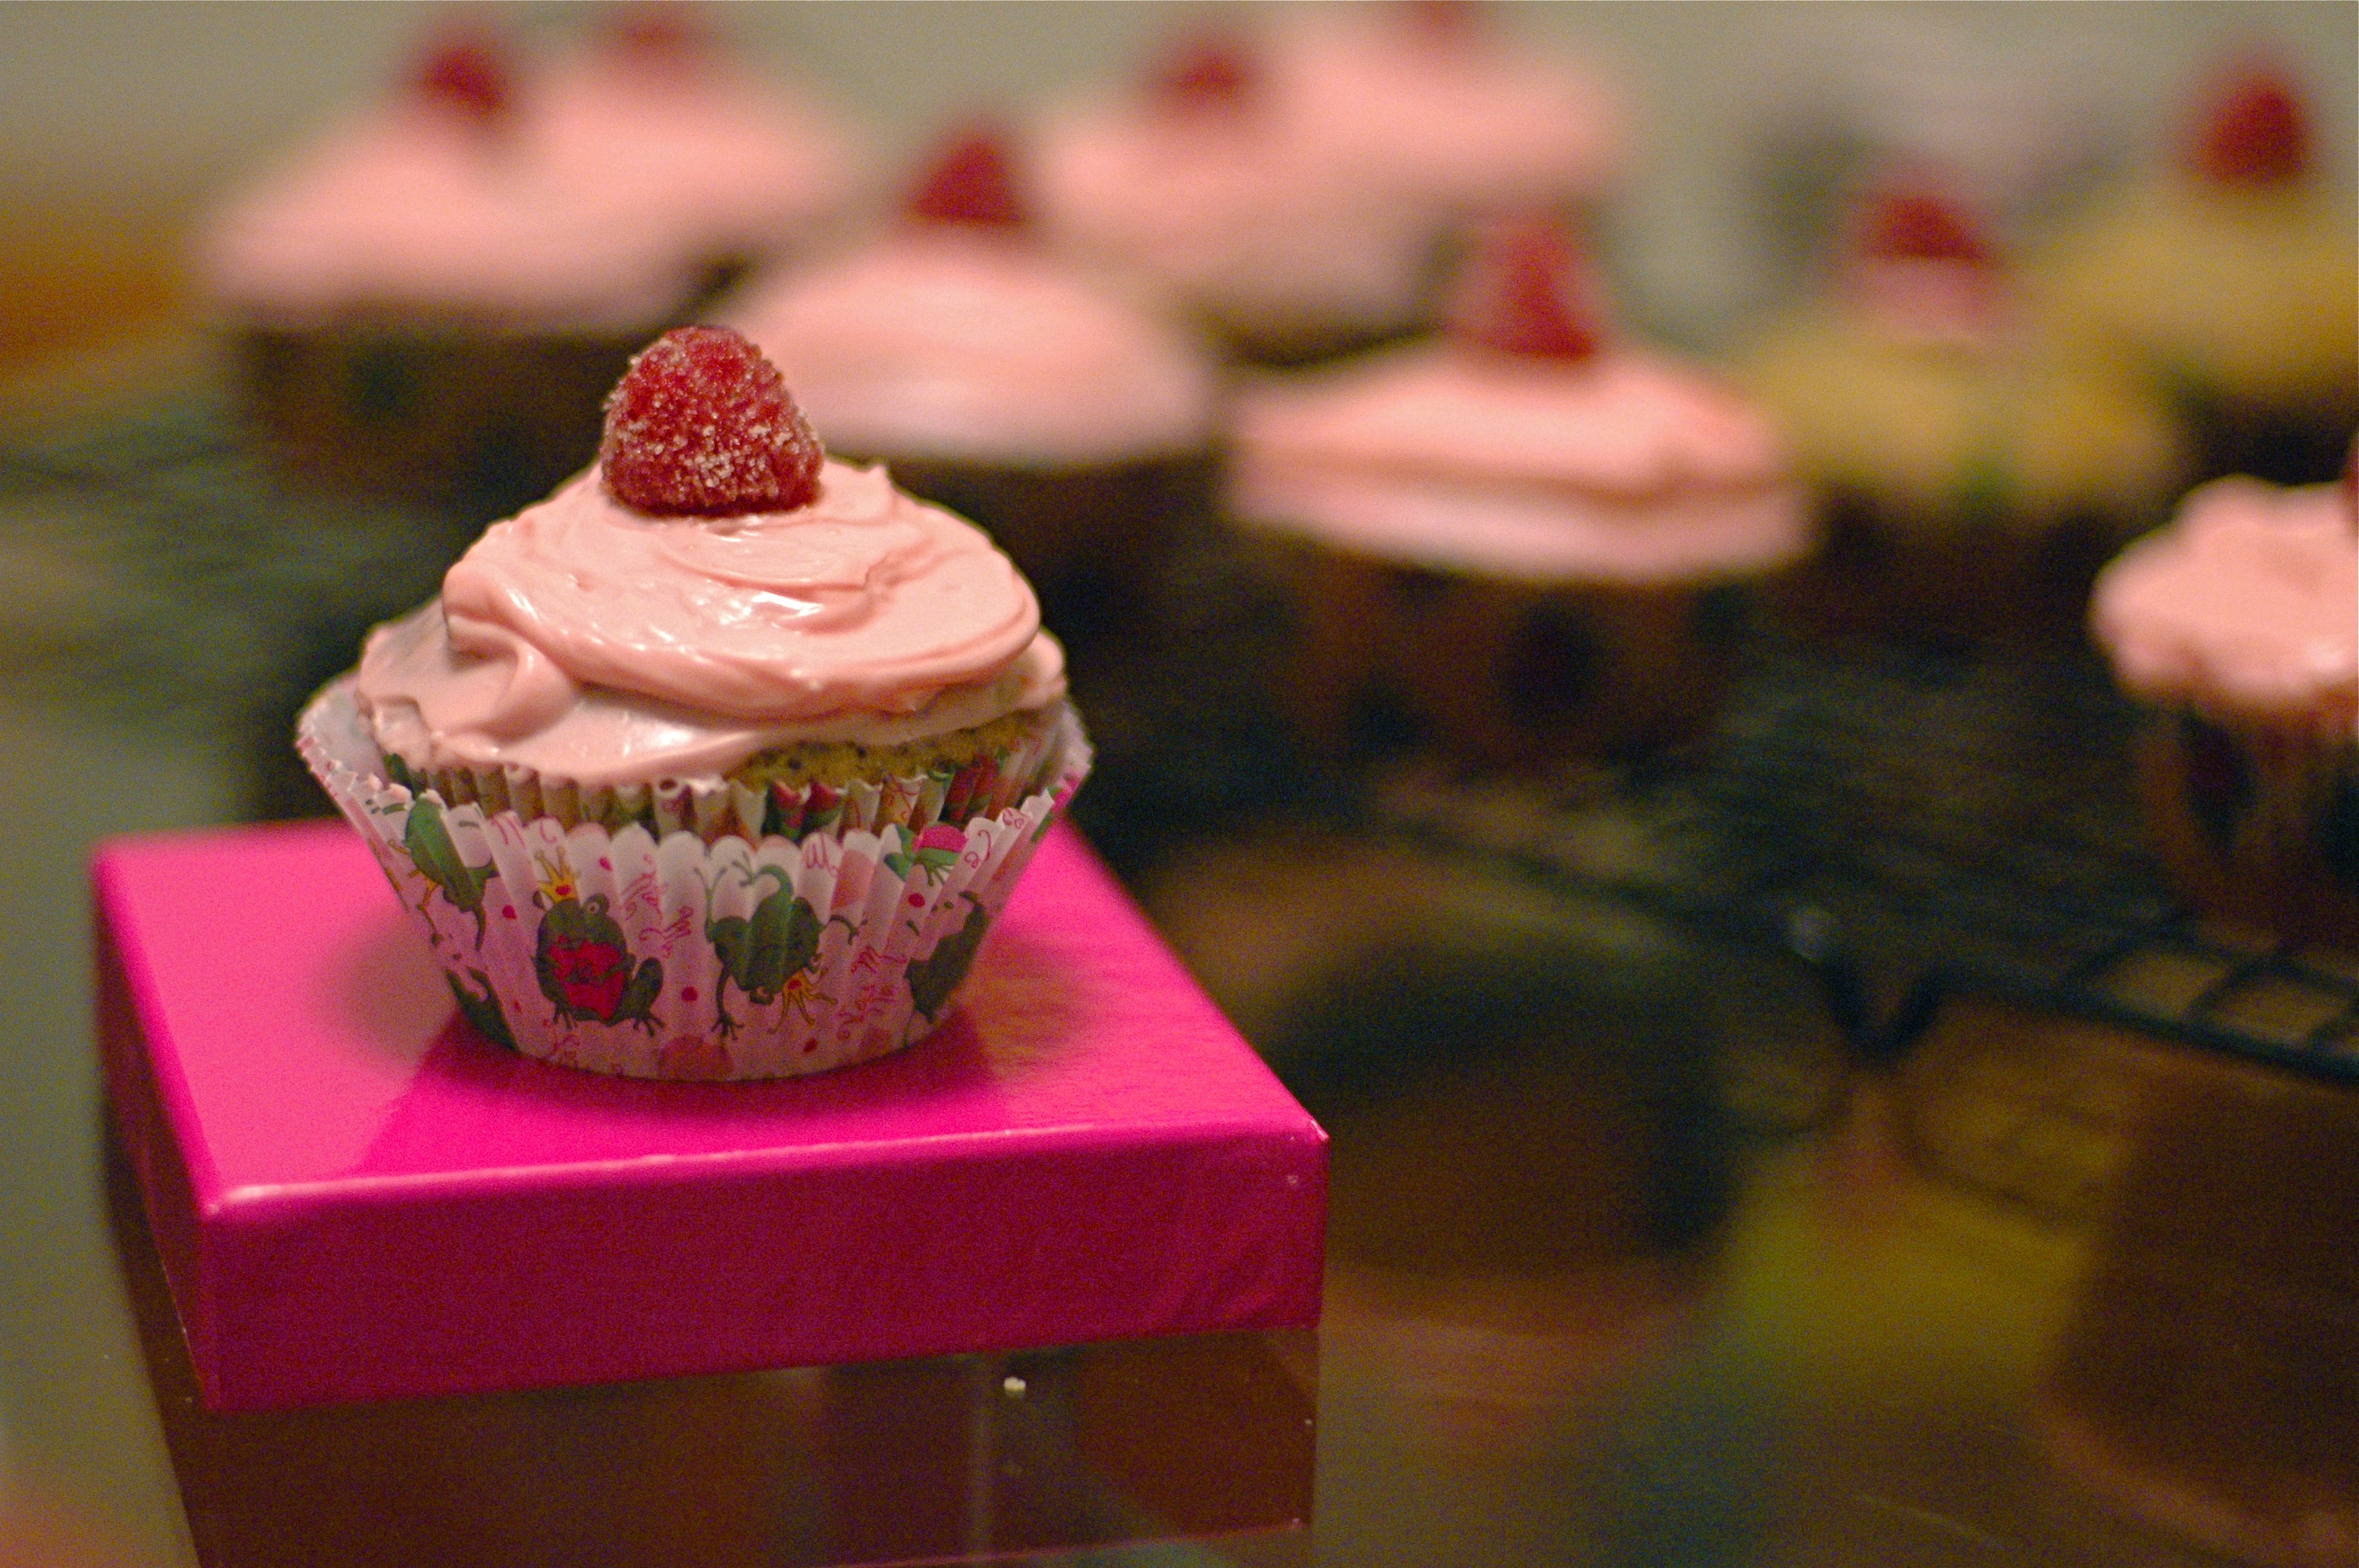 An Edible Floral Arrangement — Rose and Poppy Seed Cupcakes